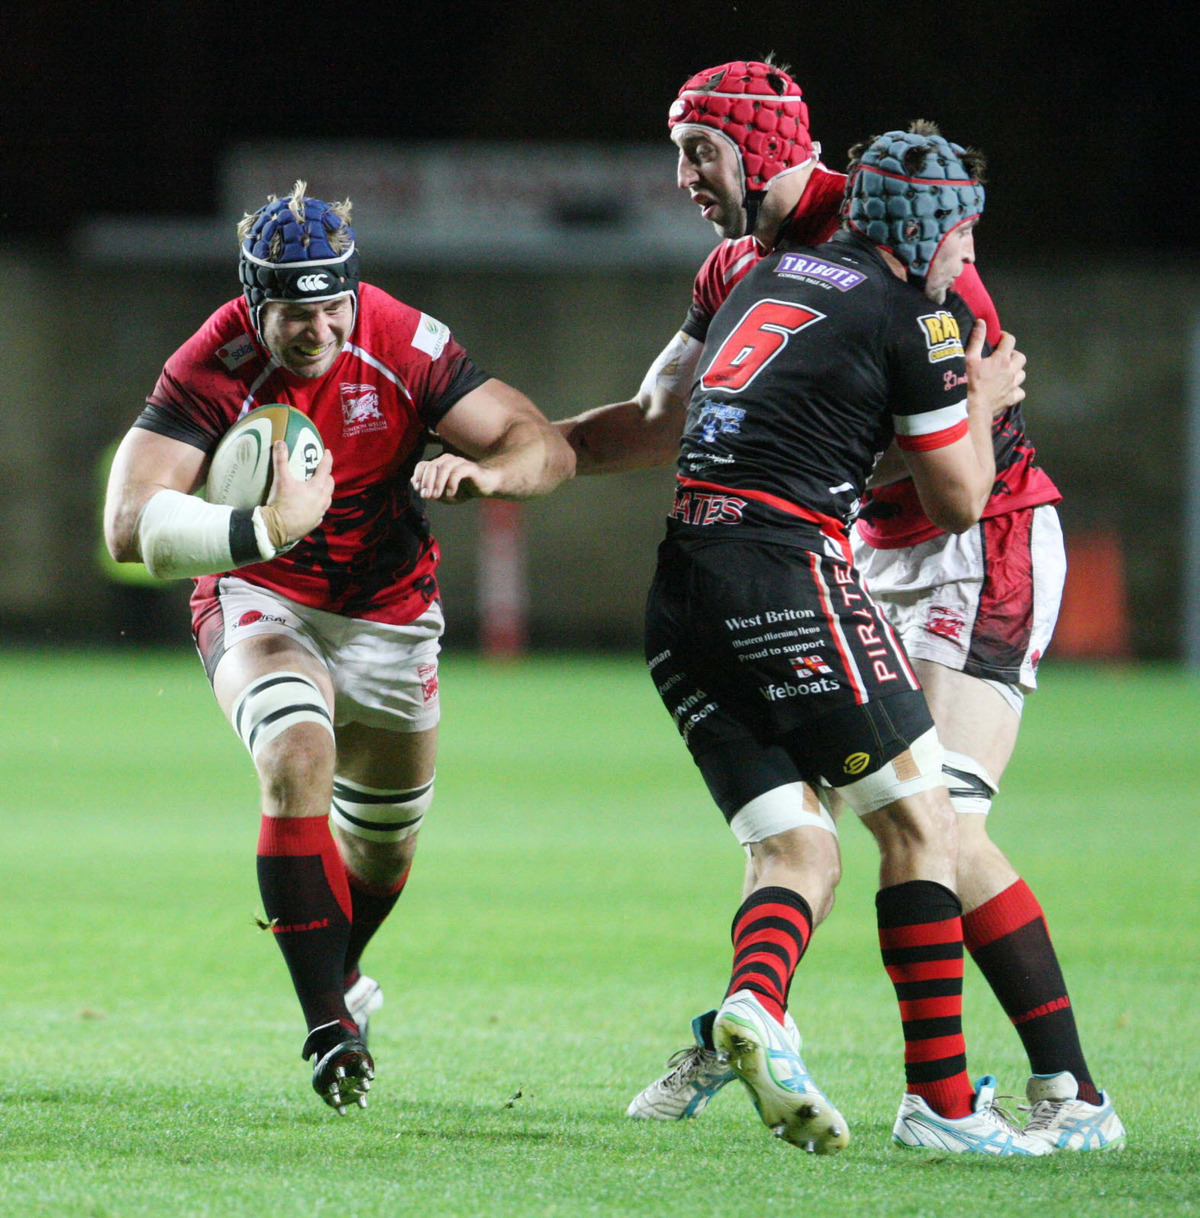 Richard Thorpe (carrying ball) makes a break for London Welsh as Pete Browne looks on